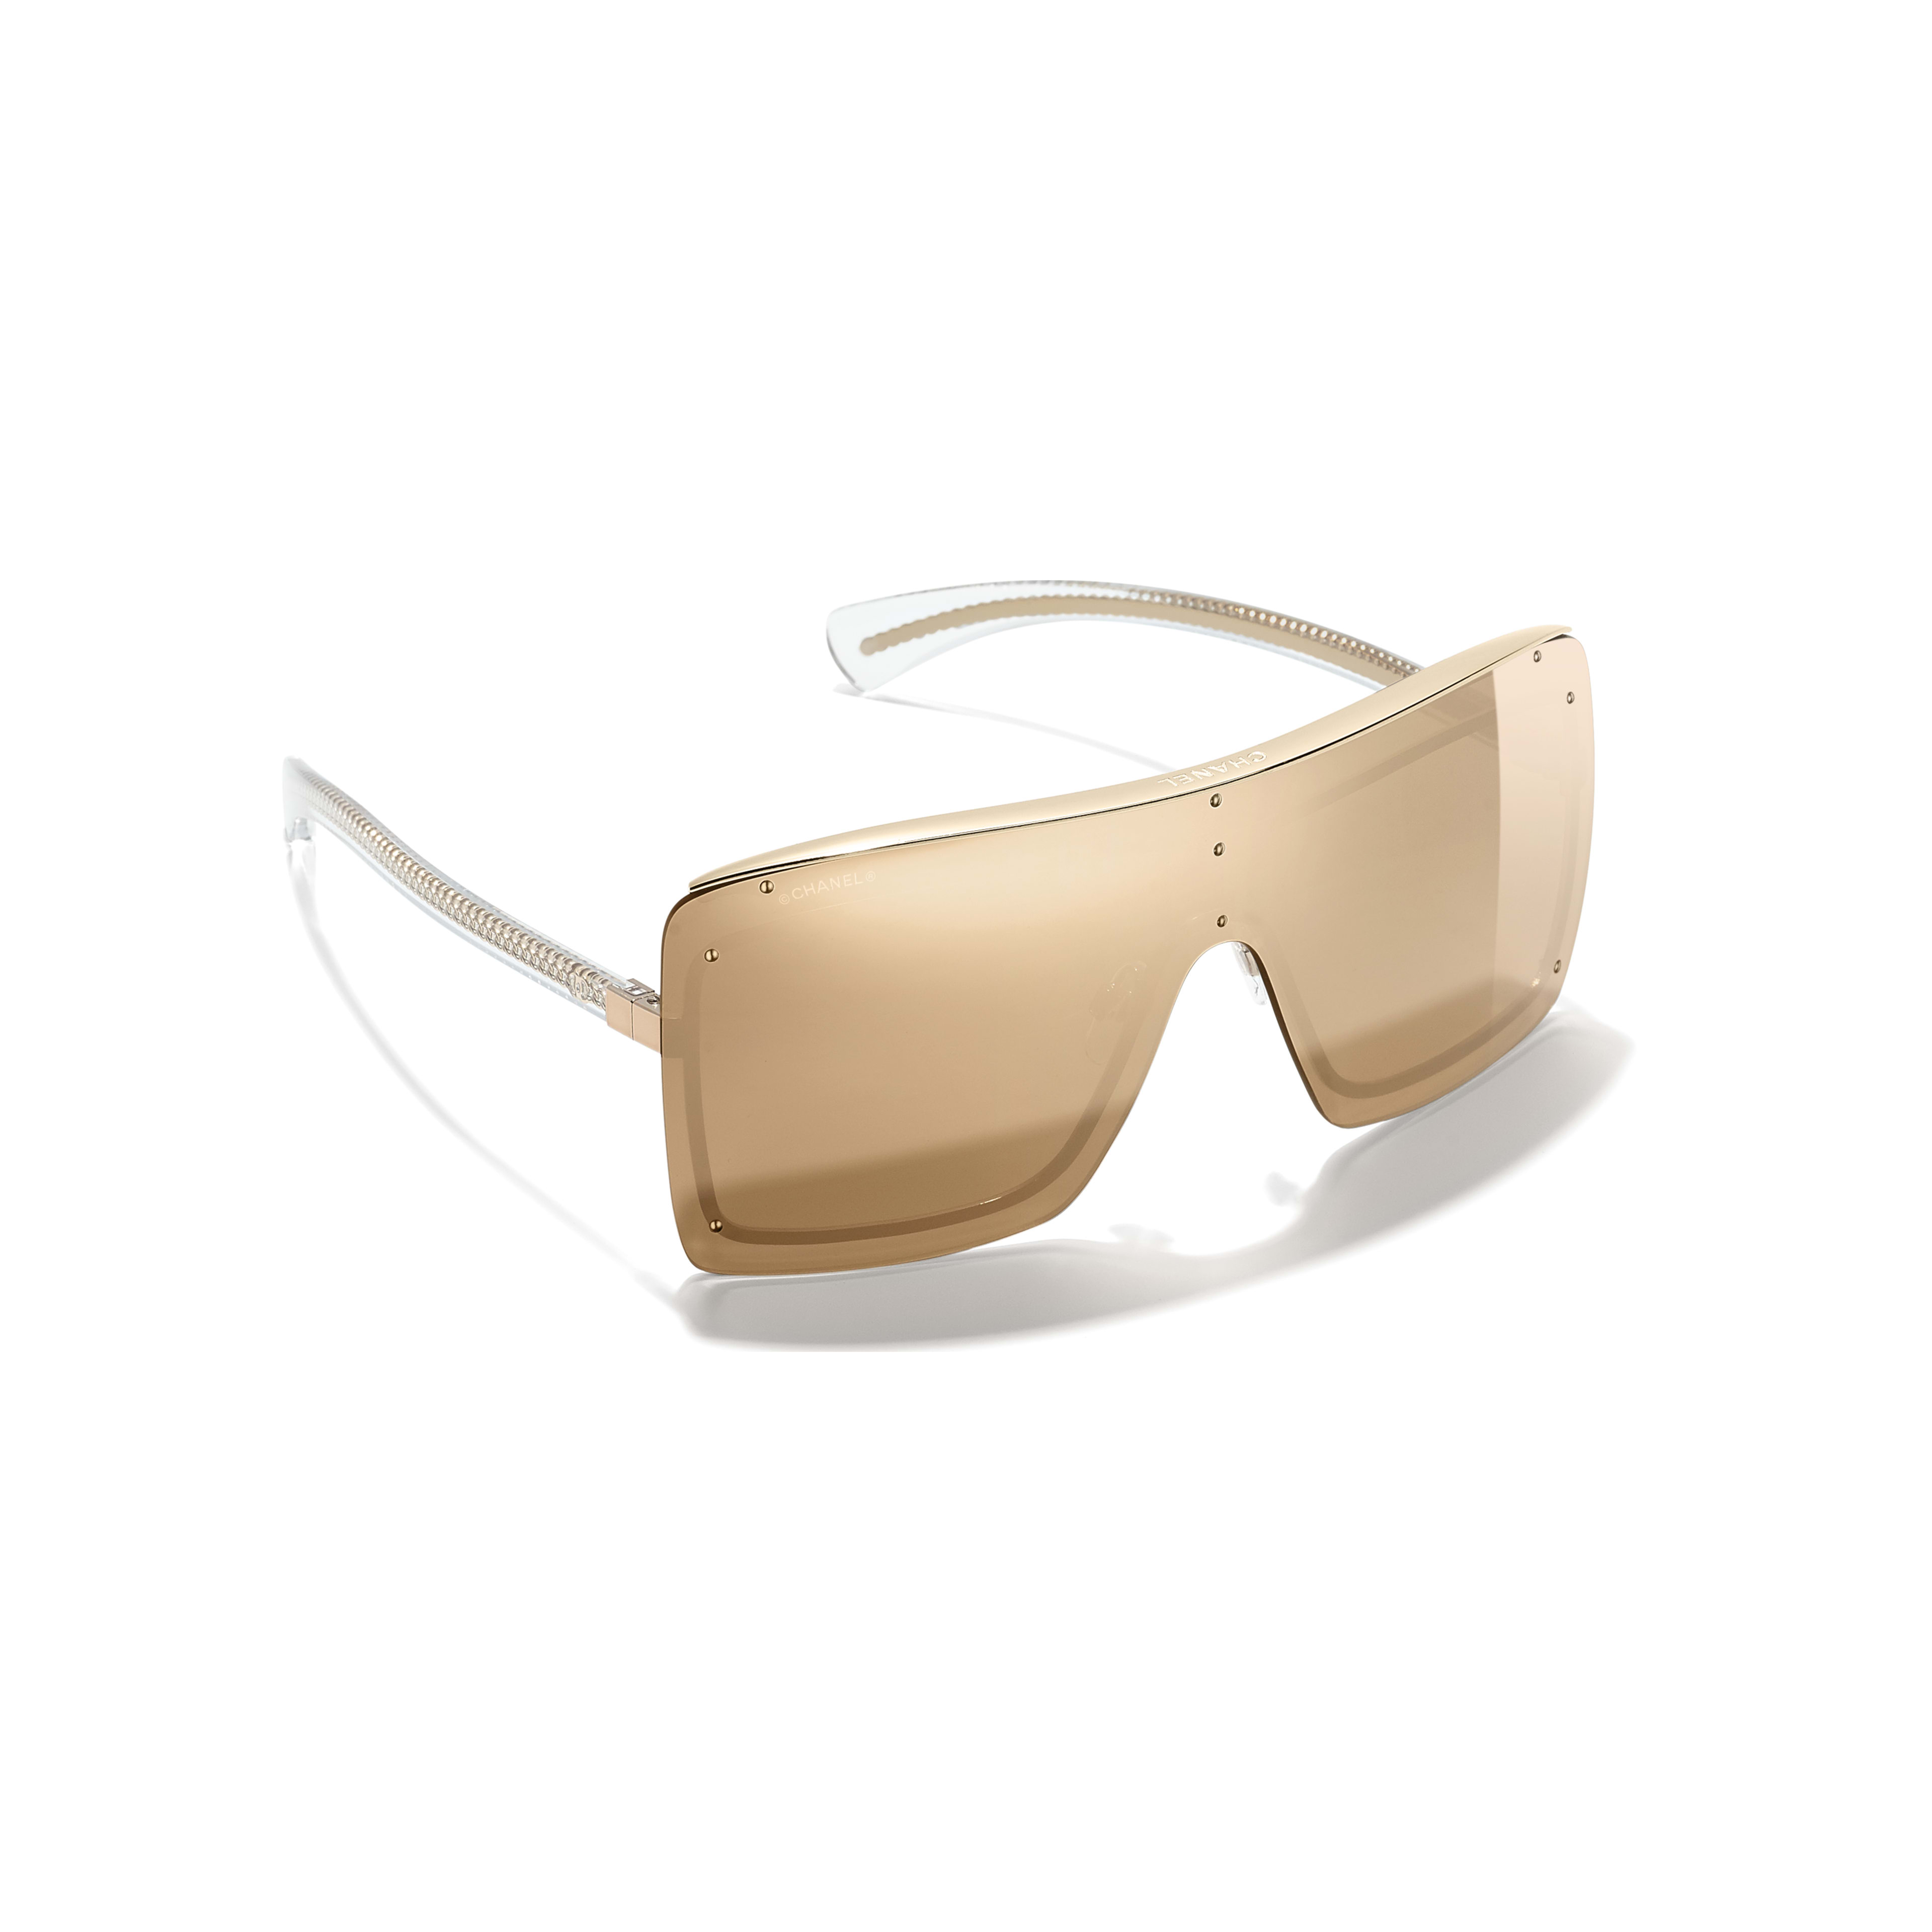 Shield Sunglasses - Gold - Metal - 18-Karat Gold Lenses - Extra view - see full sized version